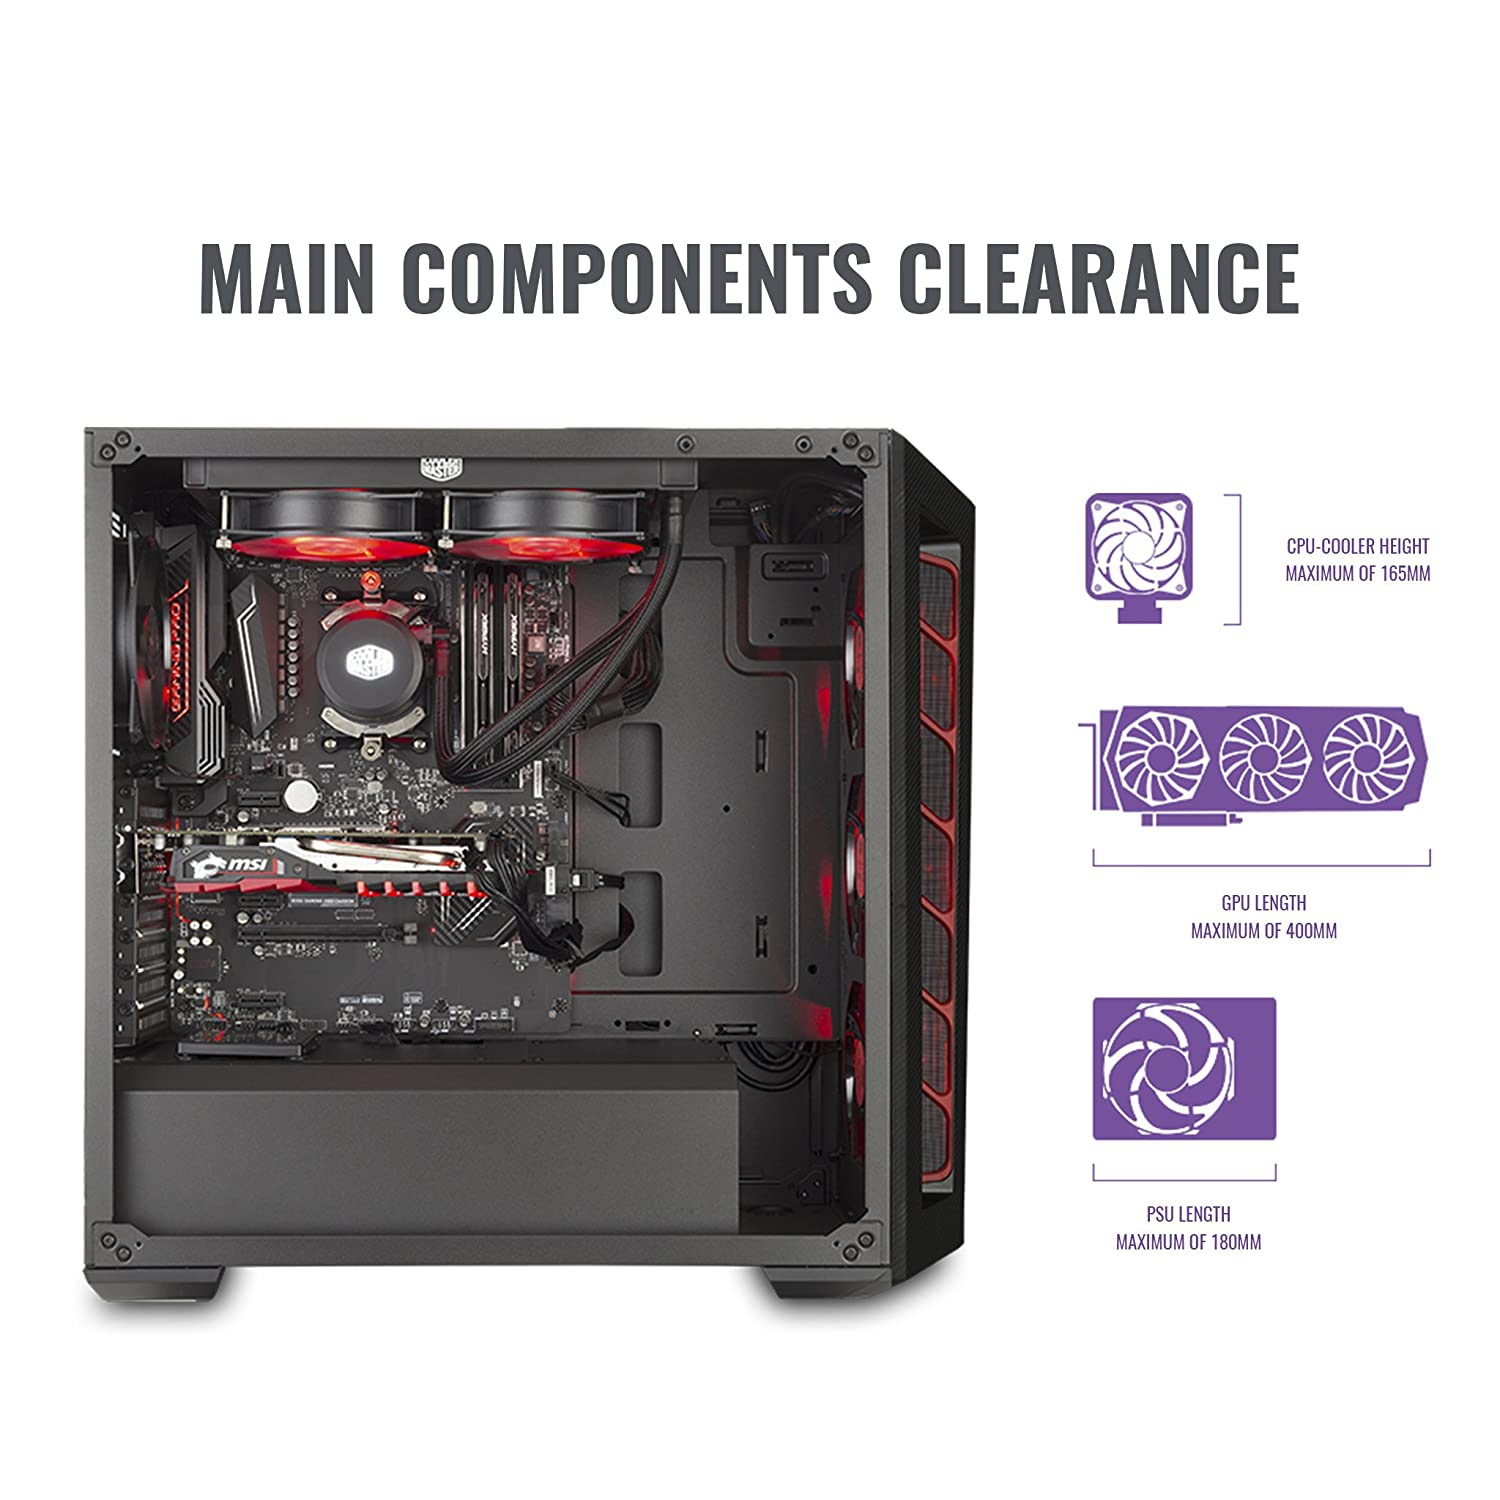 f211458377f Amazon.com: Cooler Master Computer Case Components Other MCB-B510L-KANN-S00:  Computers & Accessories